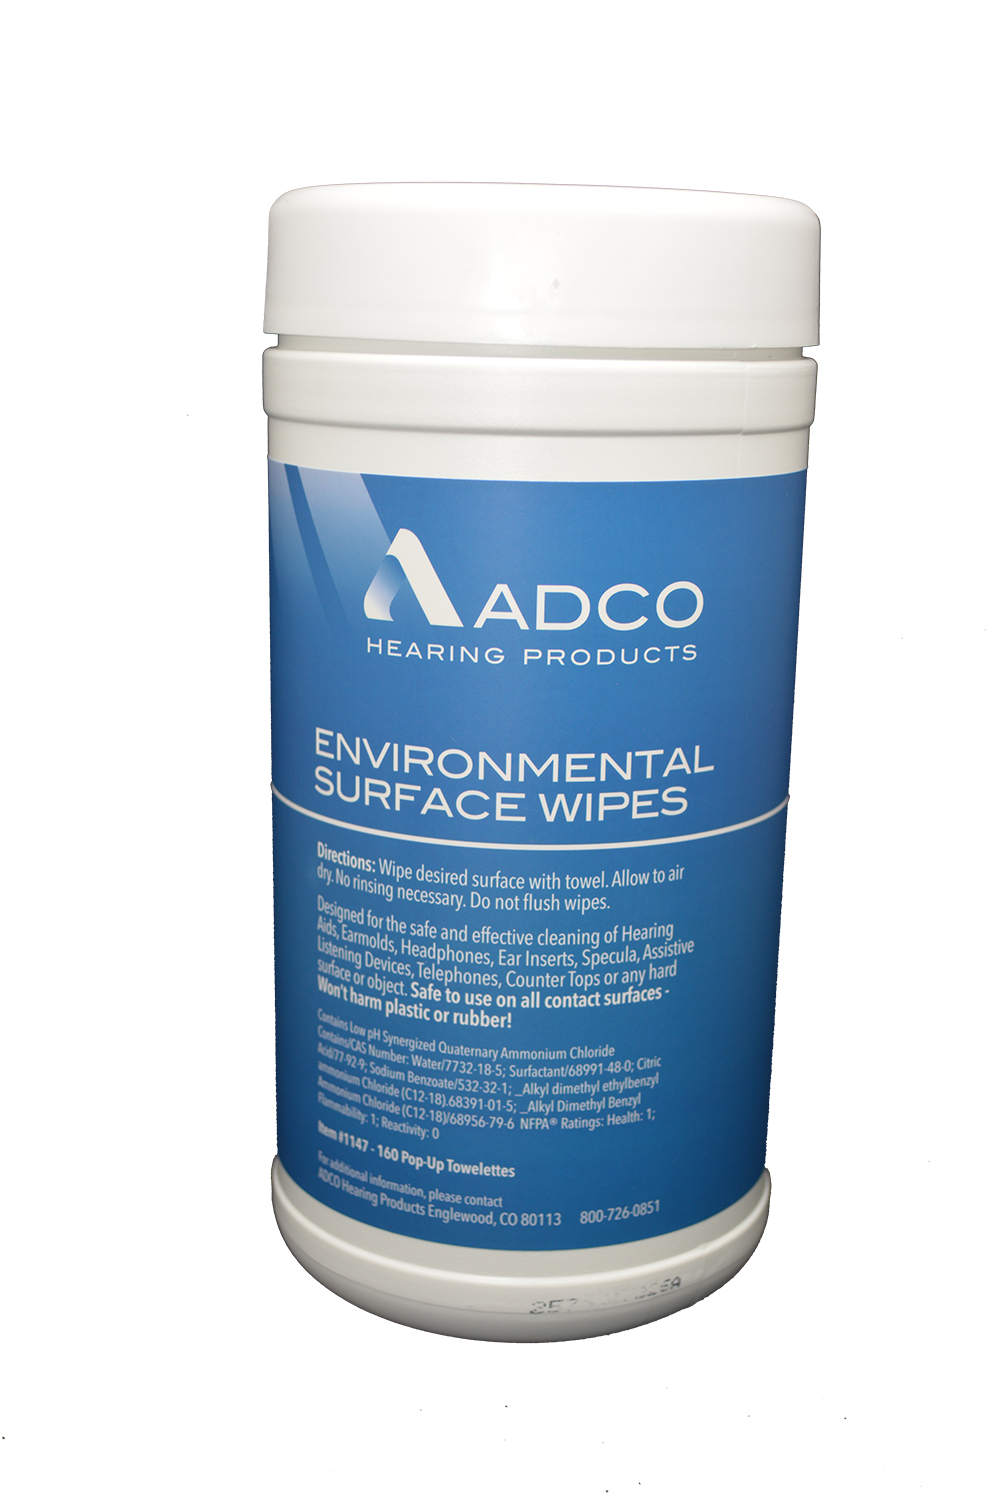 ADCO-Wipes (160ct Canister)